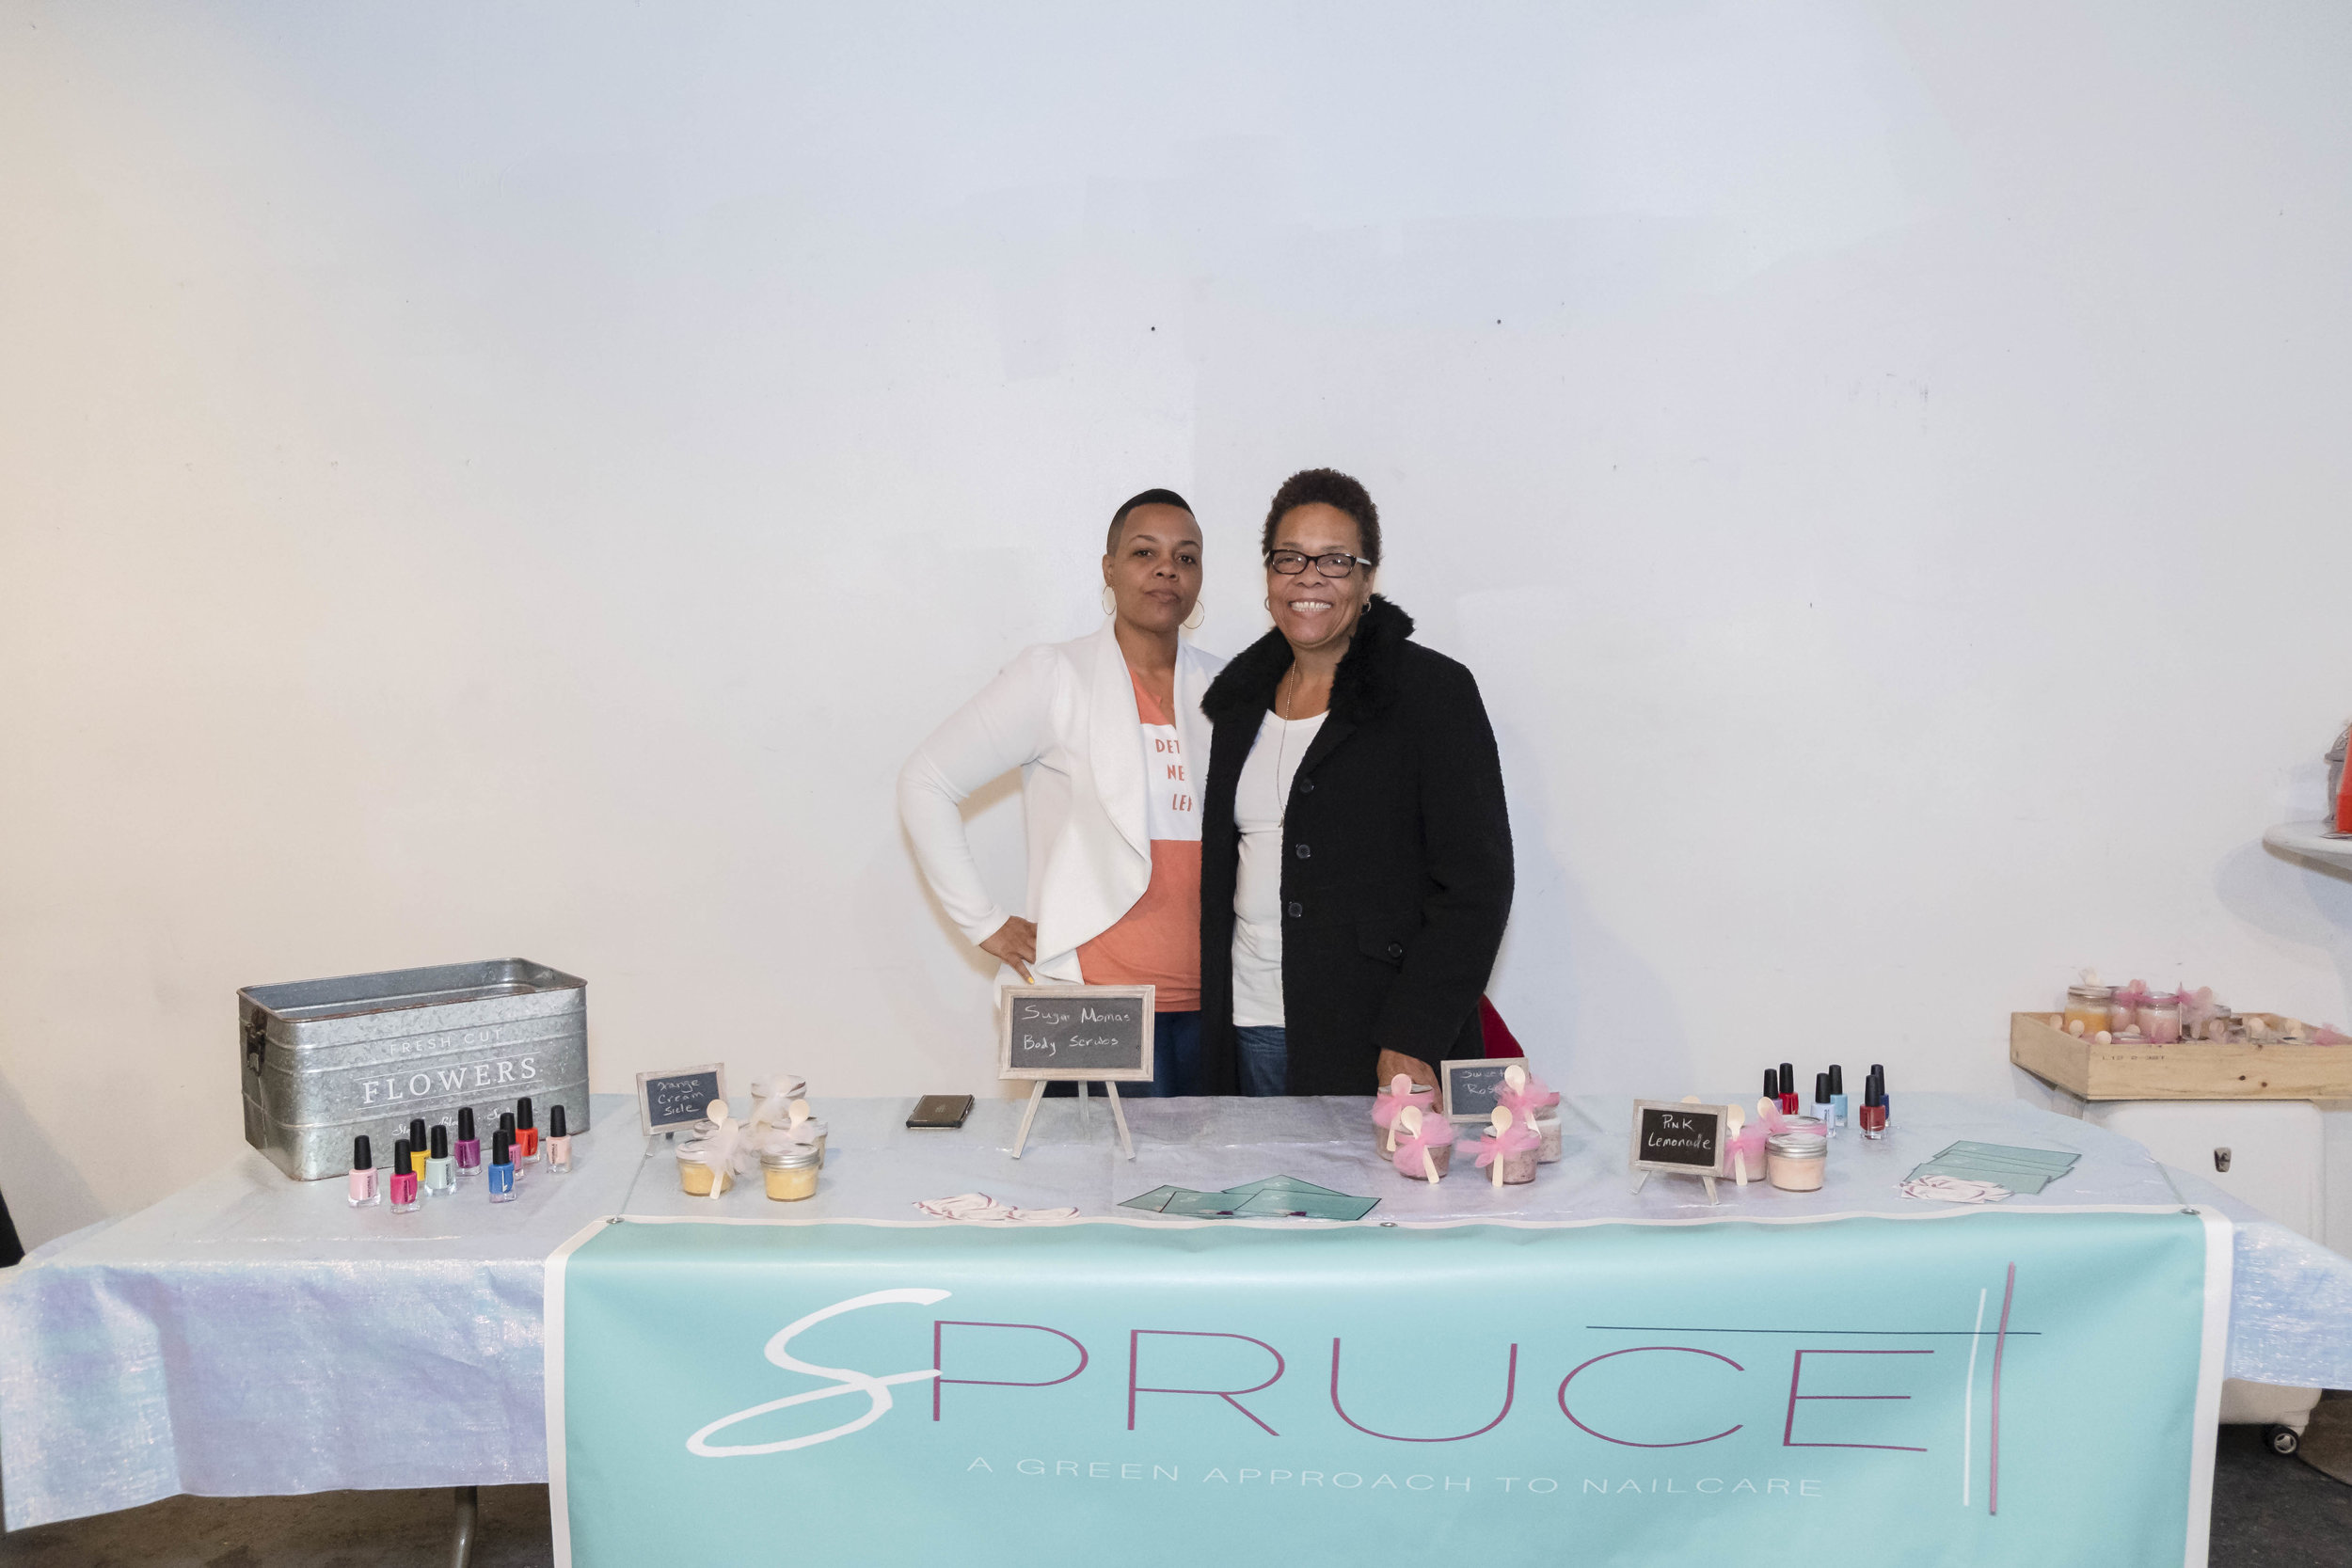 Spruce By Me    |  Vegan Nail Services & More!